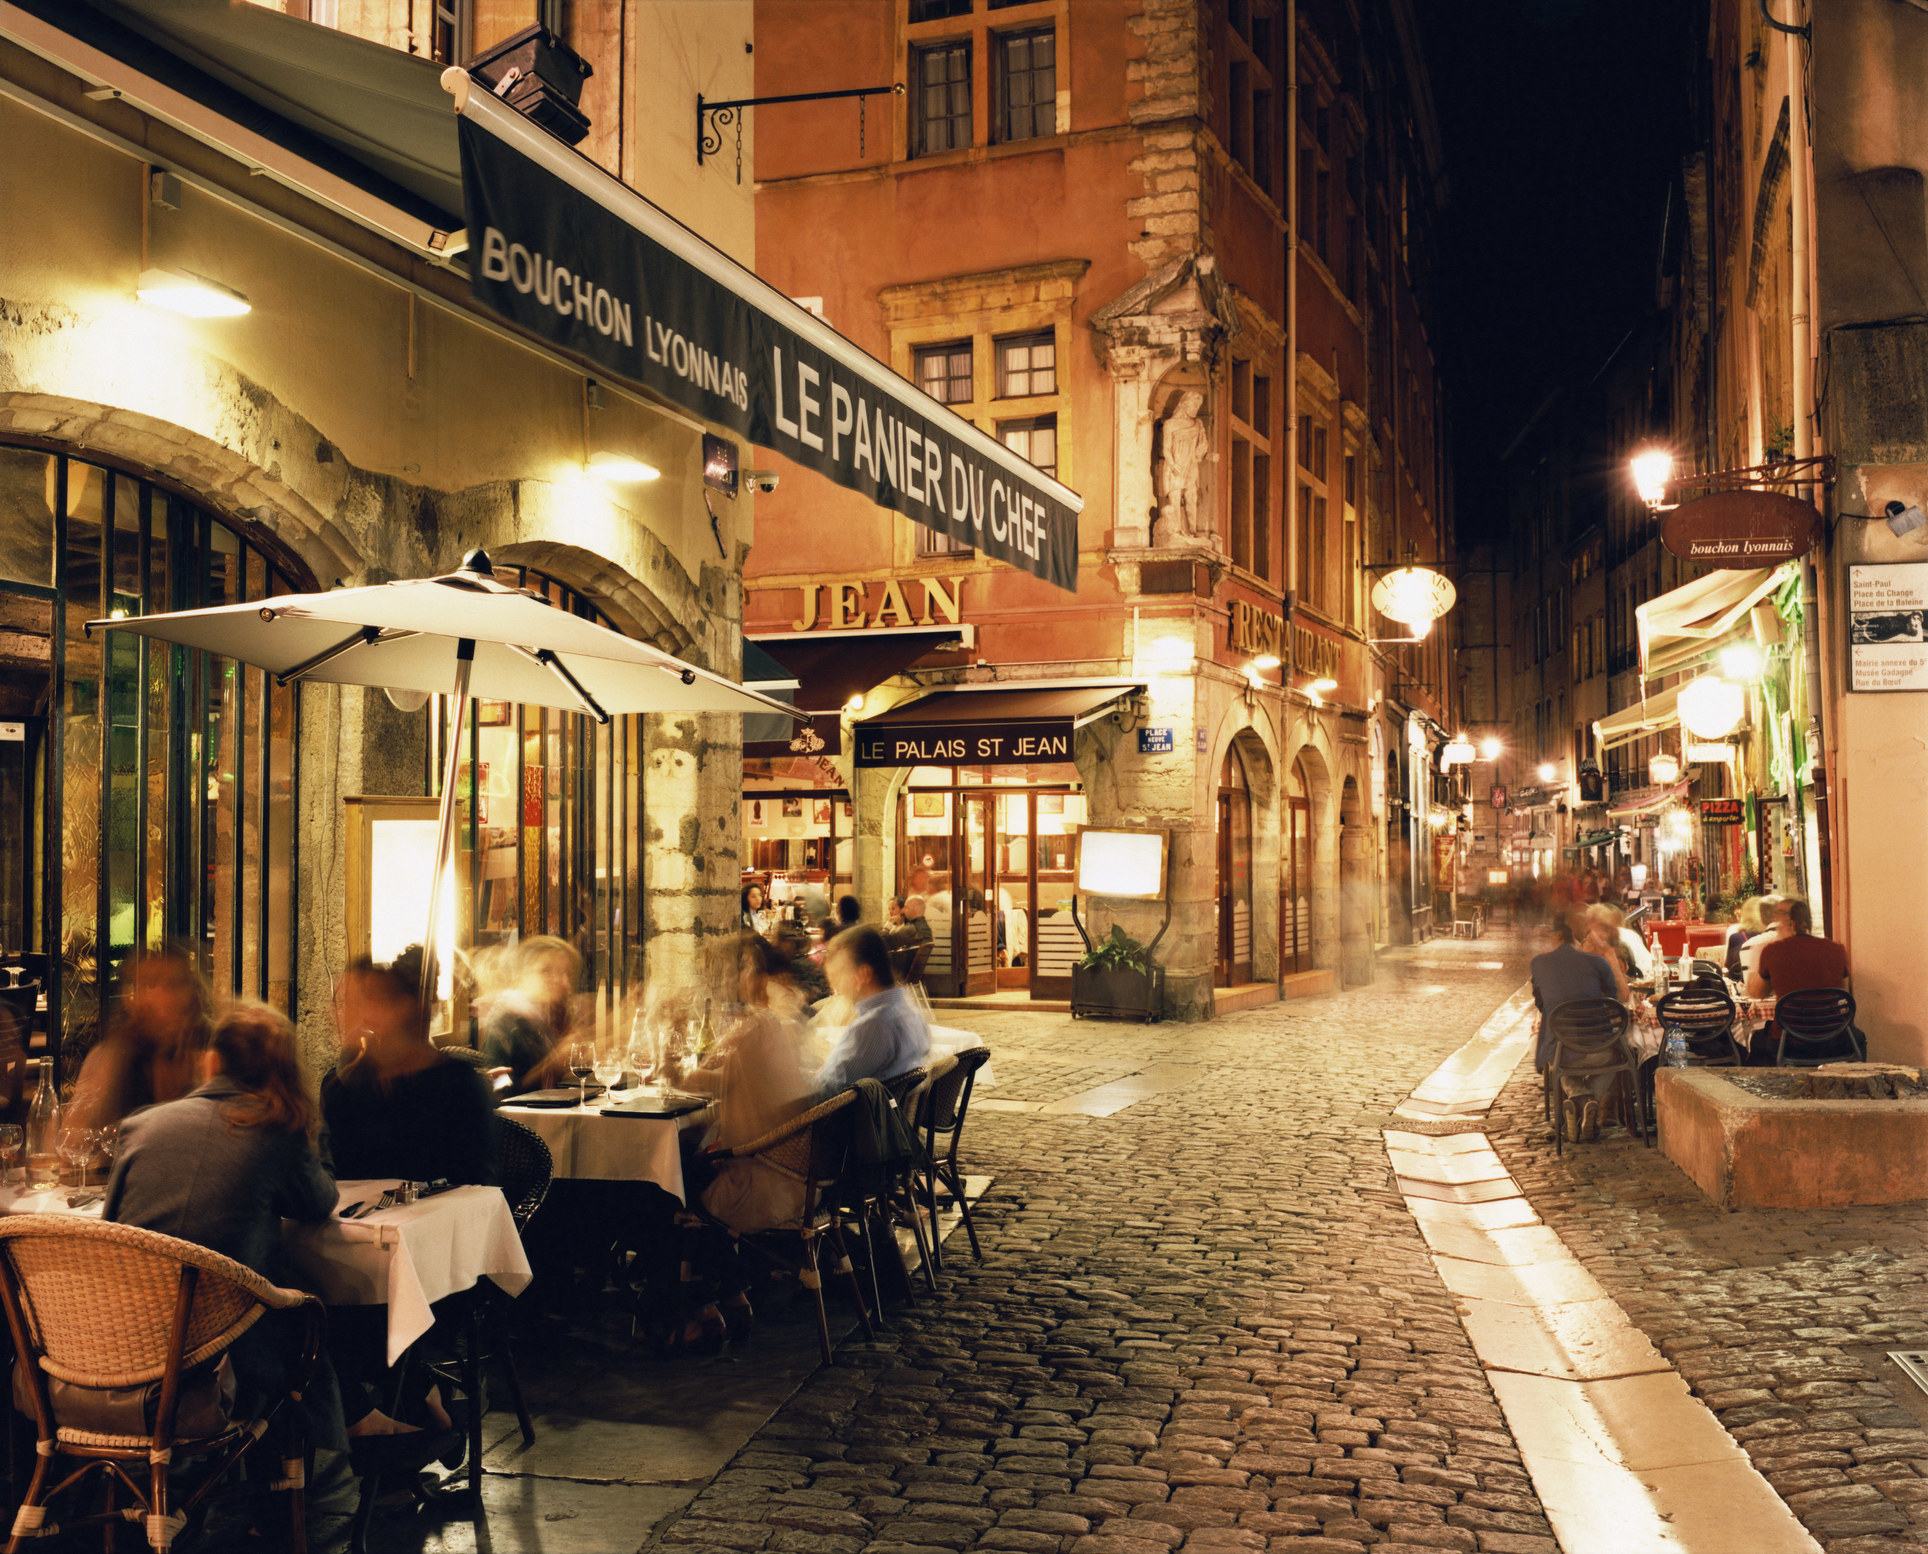 French bistro with diners outside.